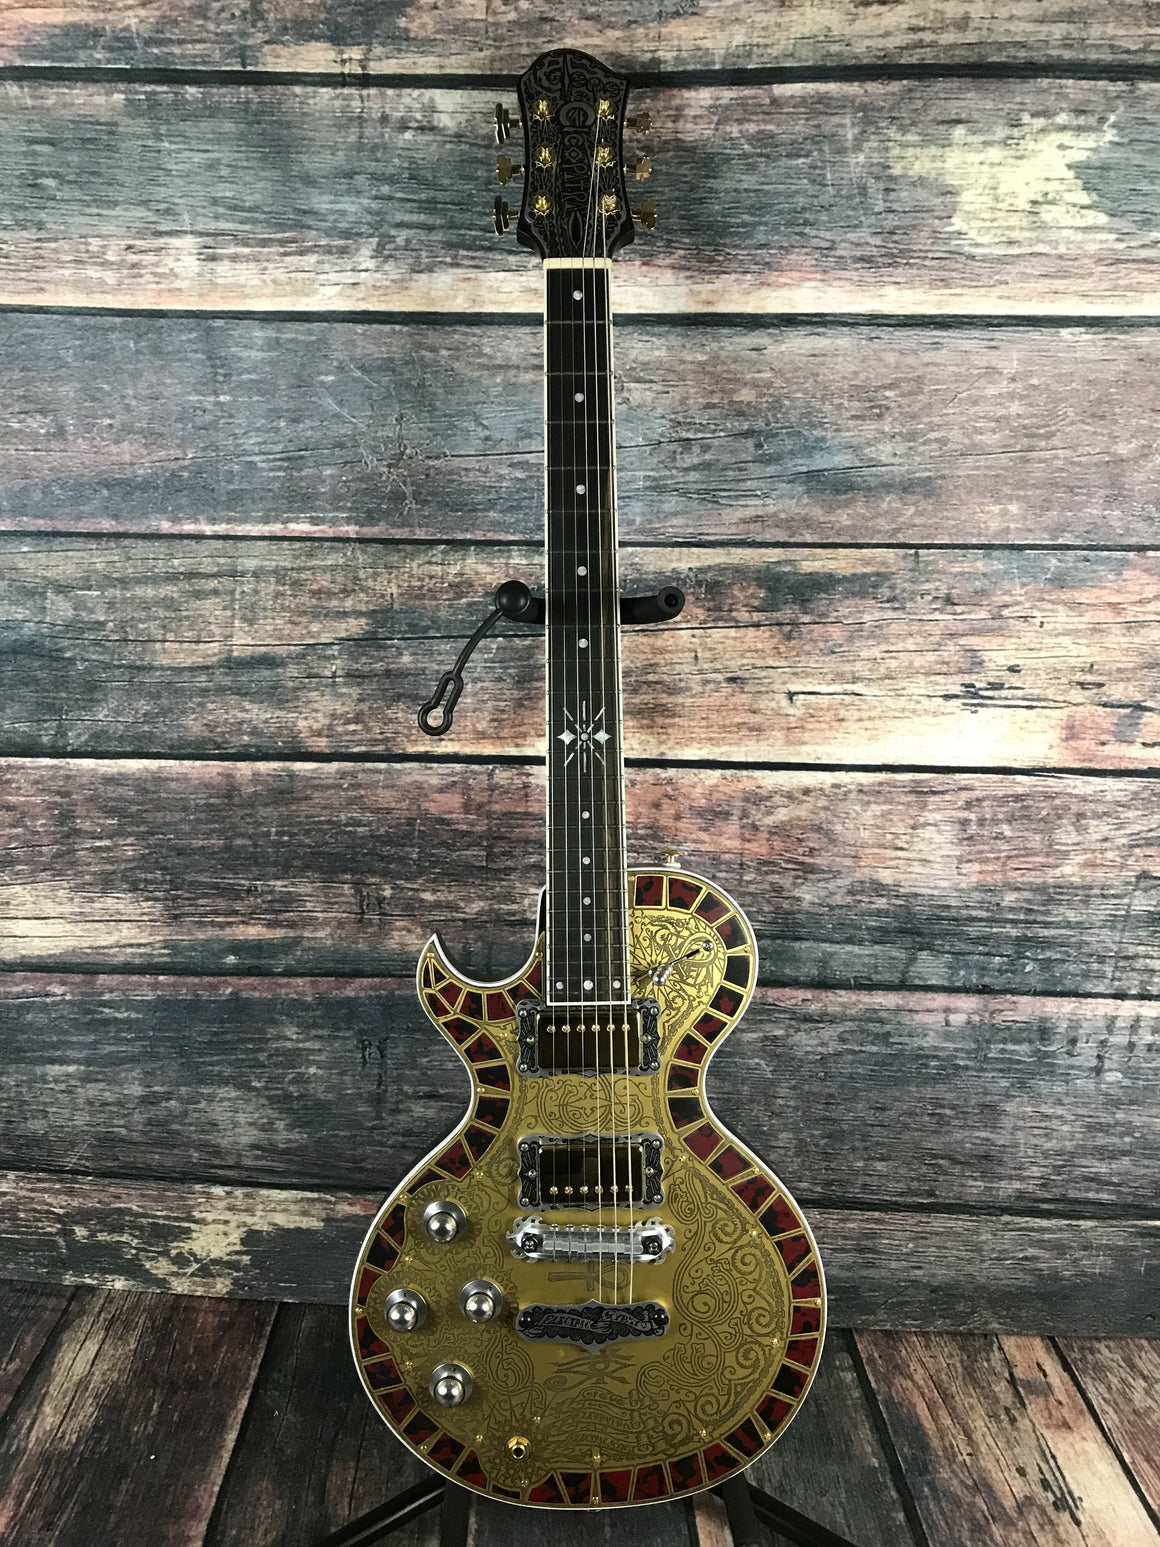 Teye Electric Guitar Teye Left Handed Electric Gypsy Cleopatra Electric Guitar